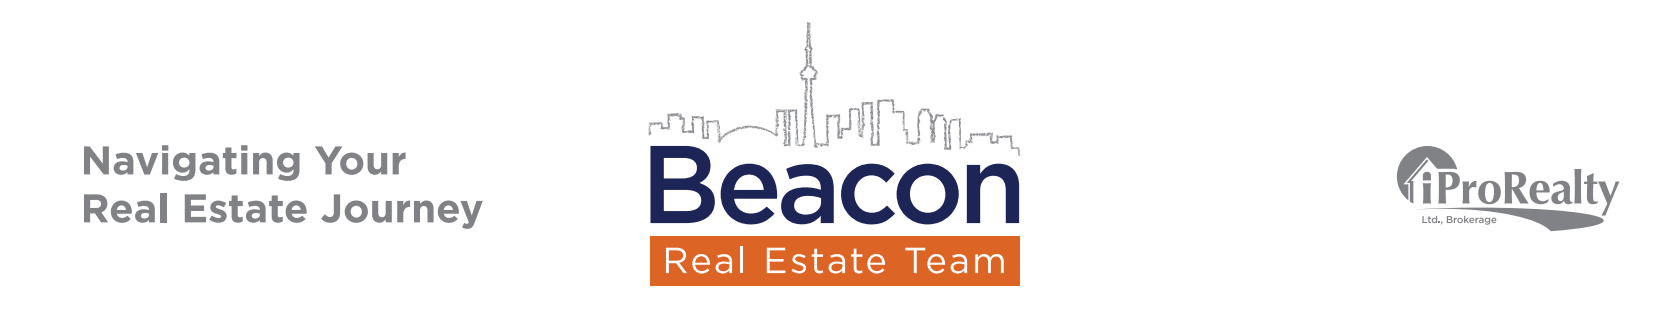 Properties Sold by Beacon Real Estate Team